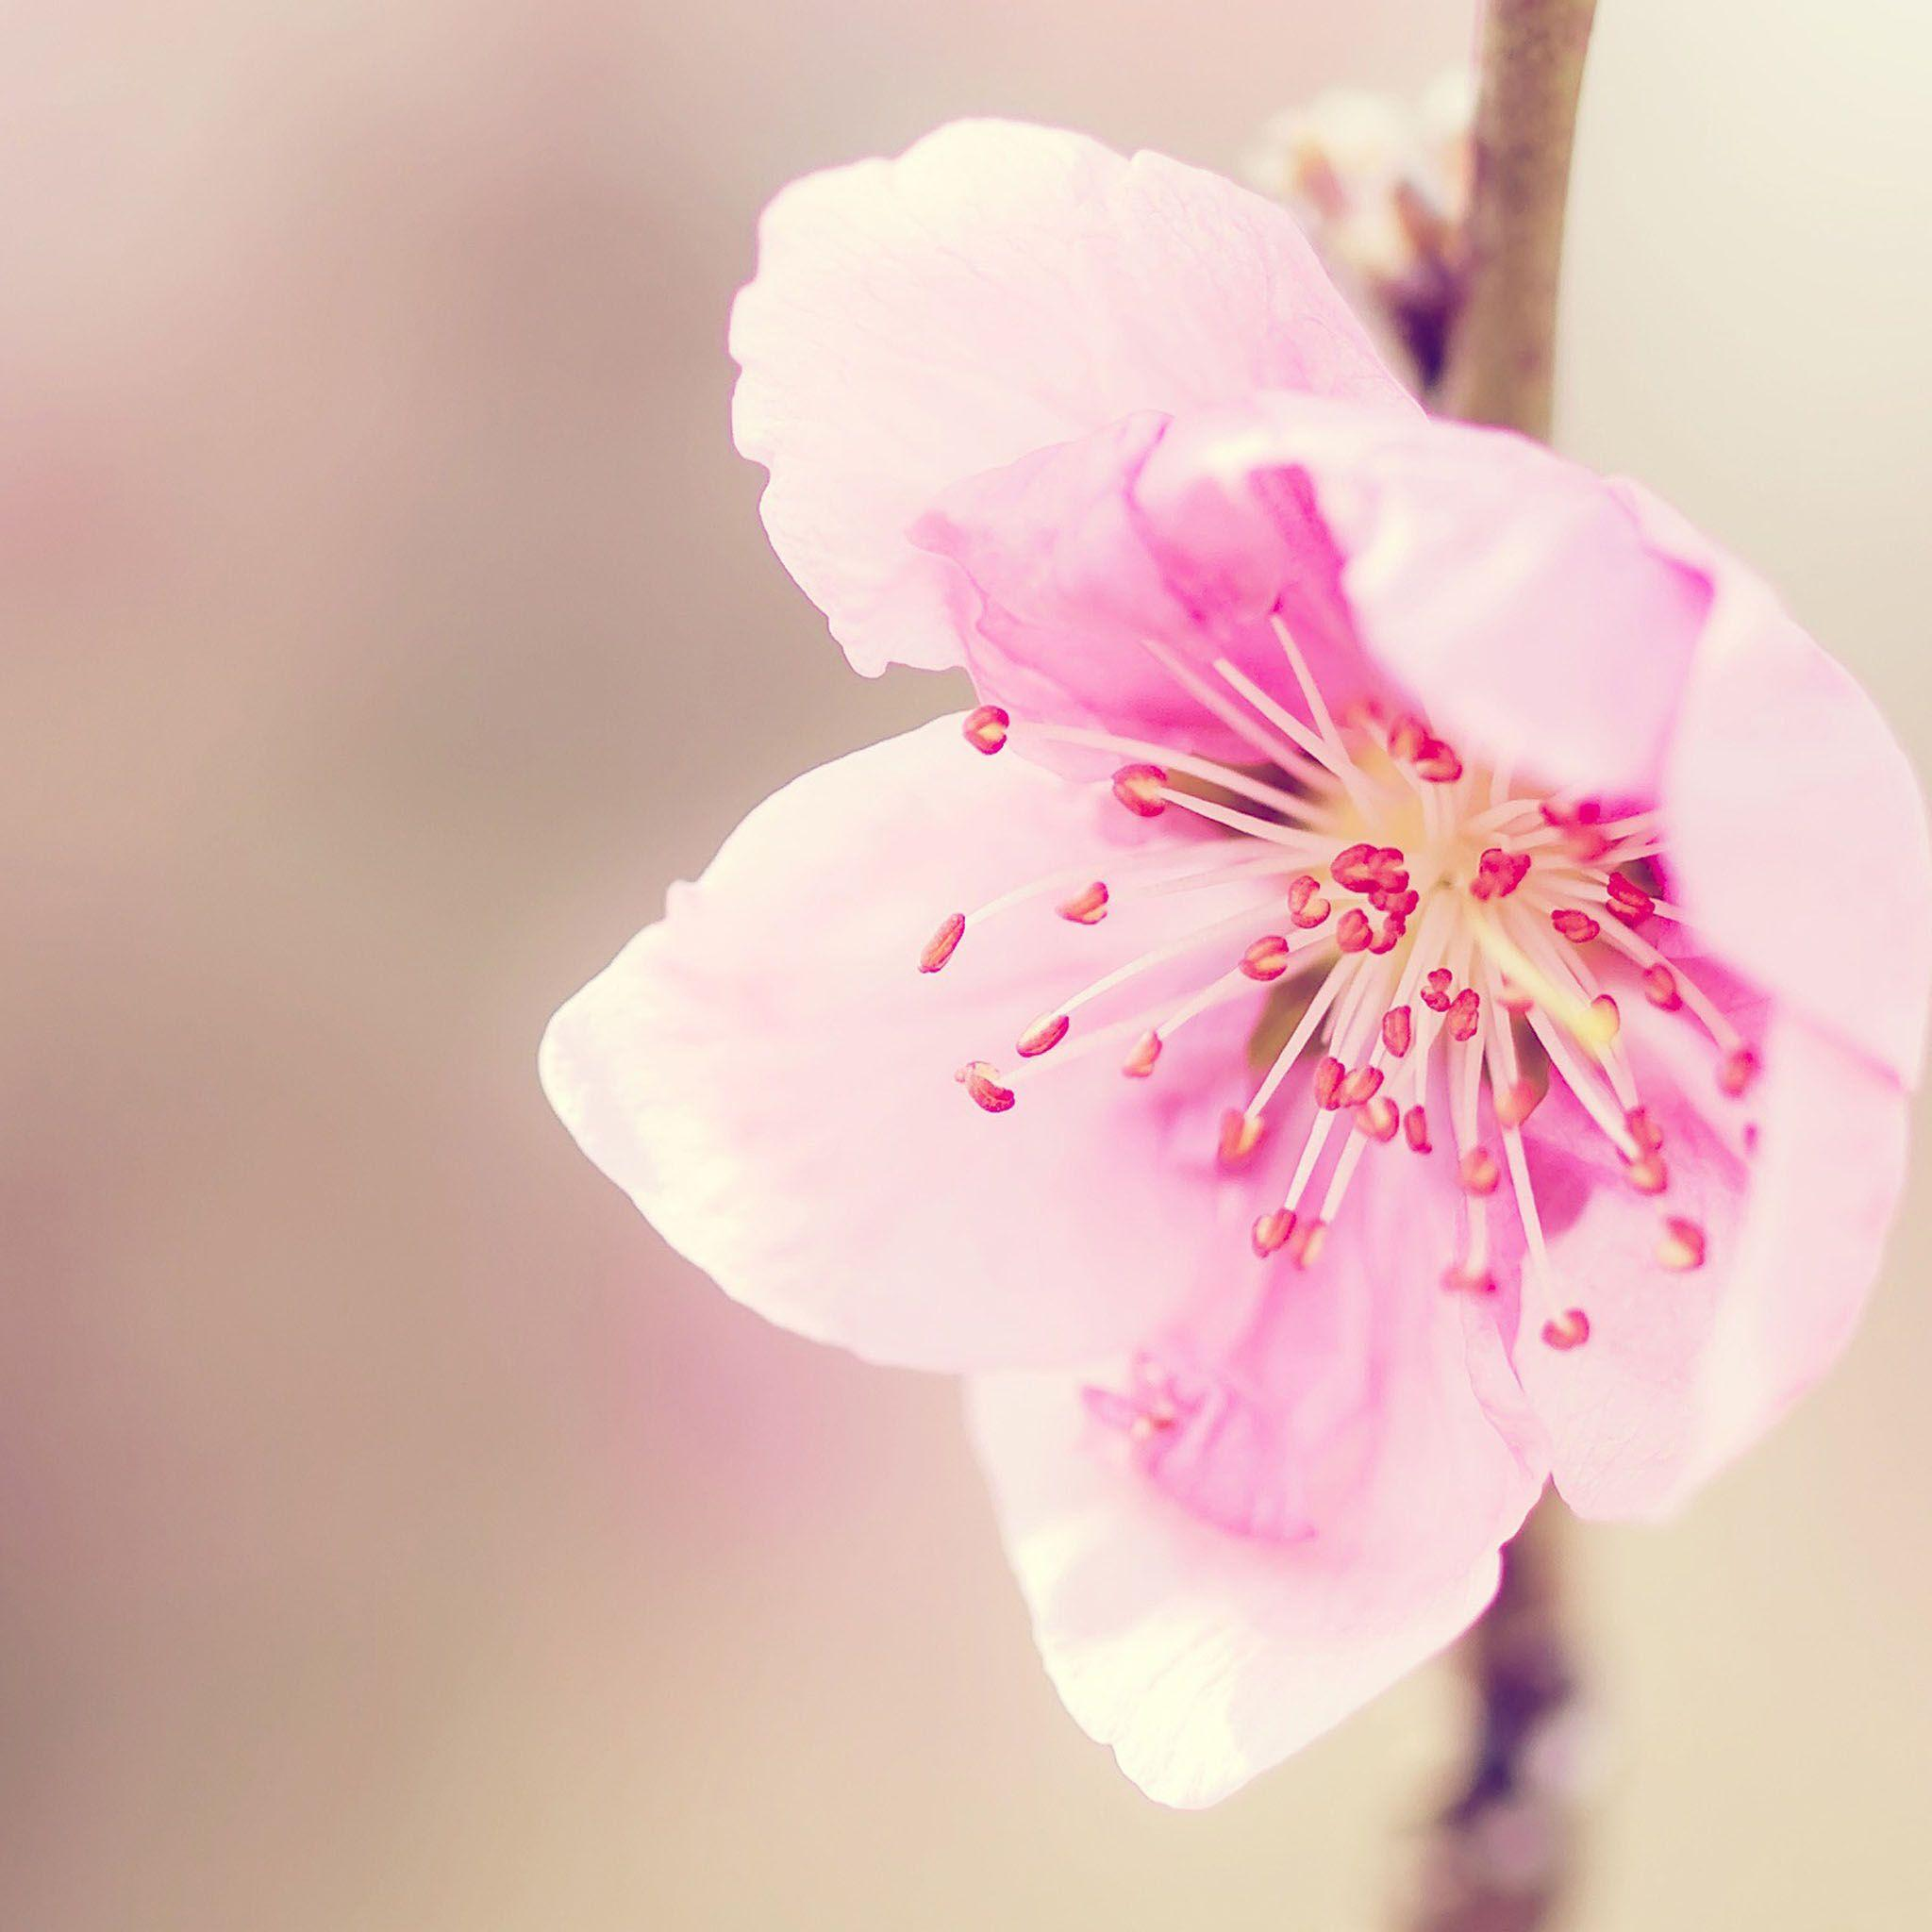 Pink Flowers Wallpaper: Pictures Of Pretty Backgrounds